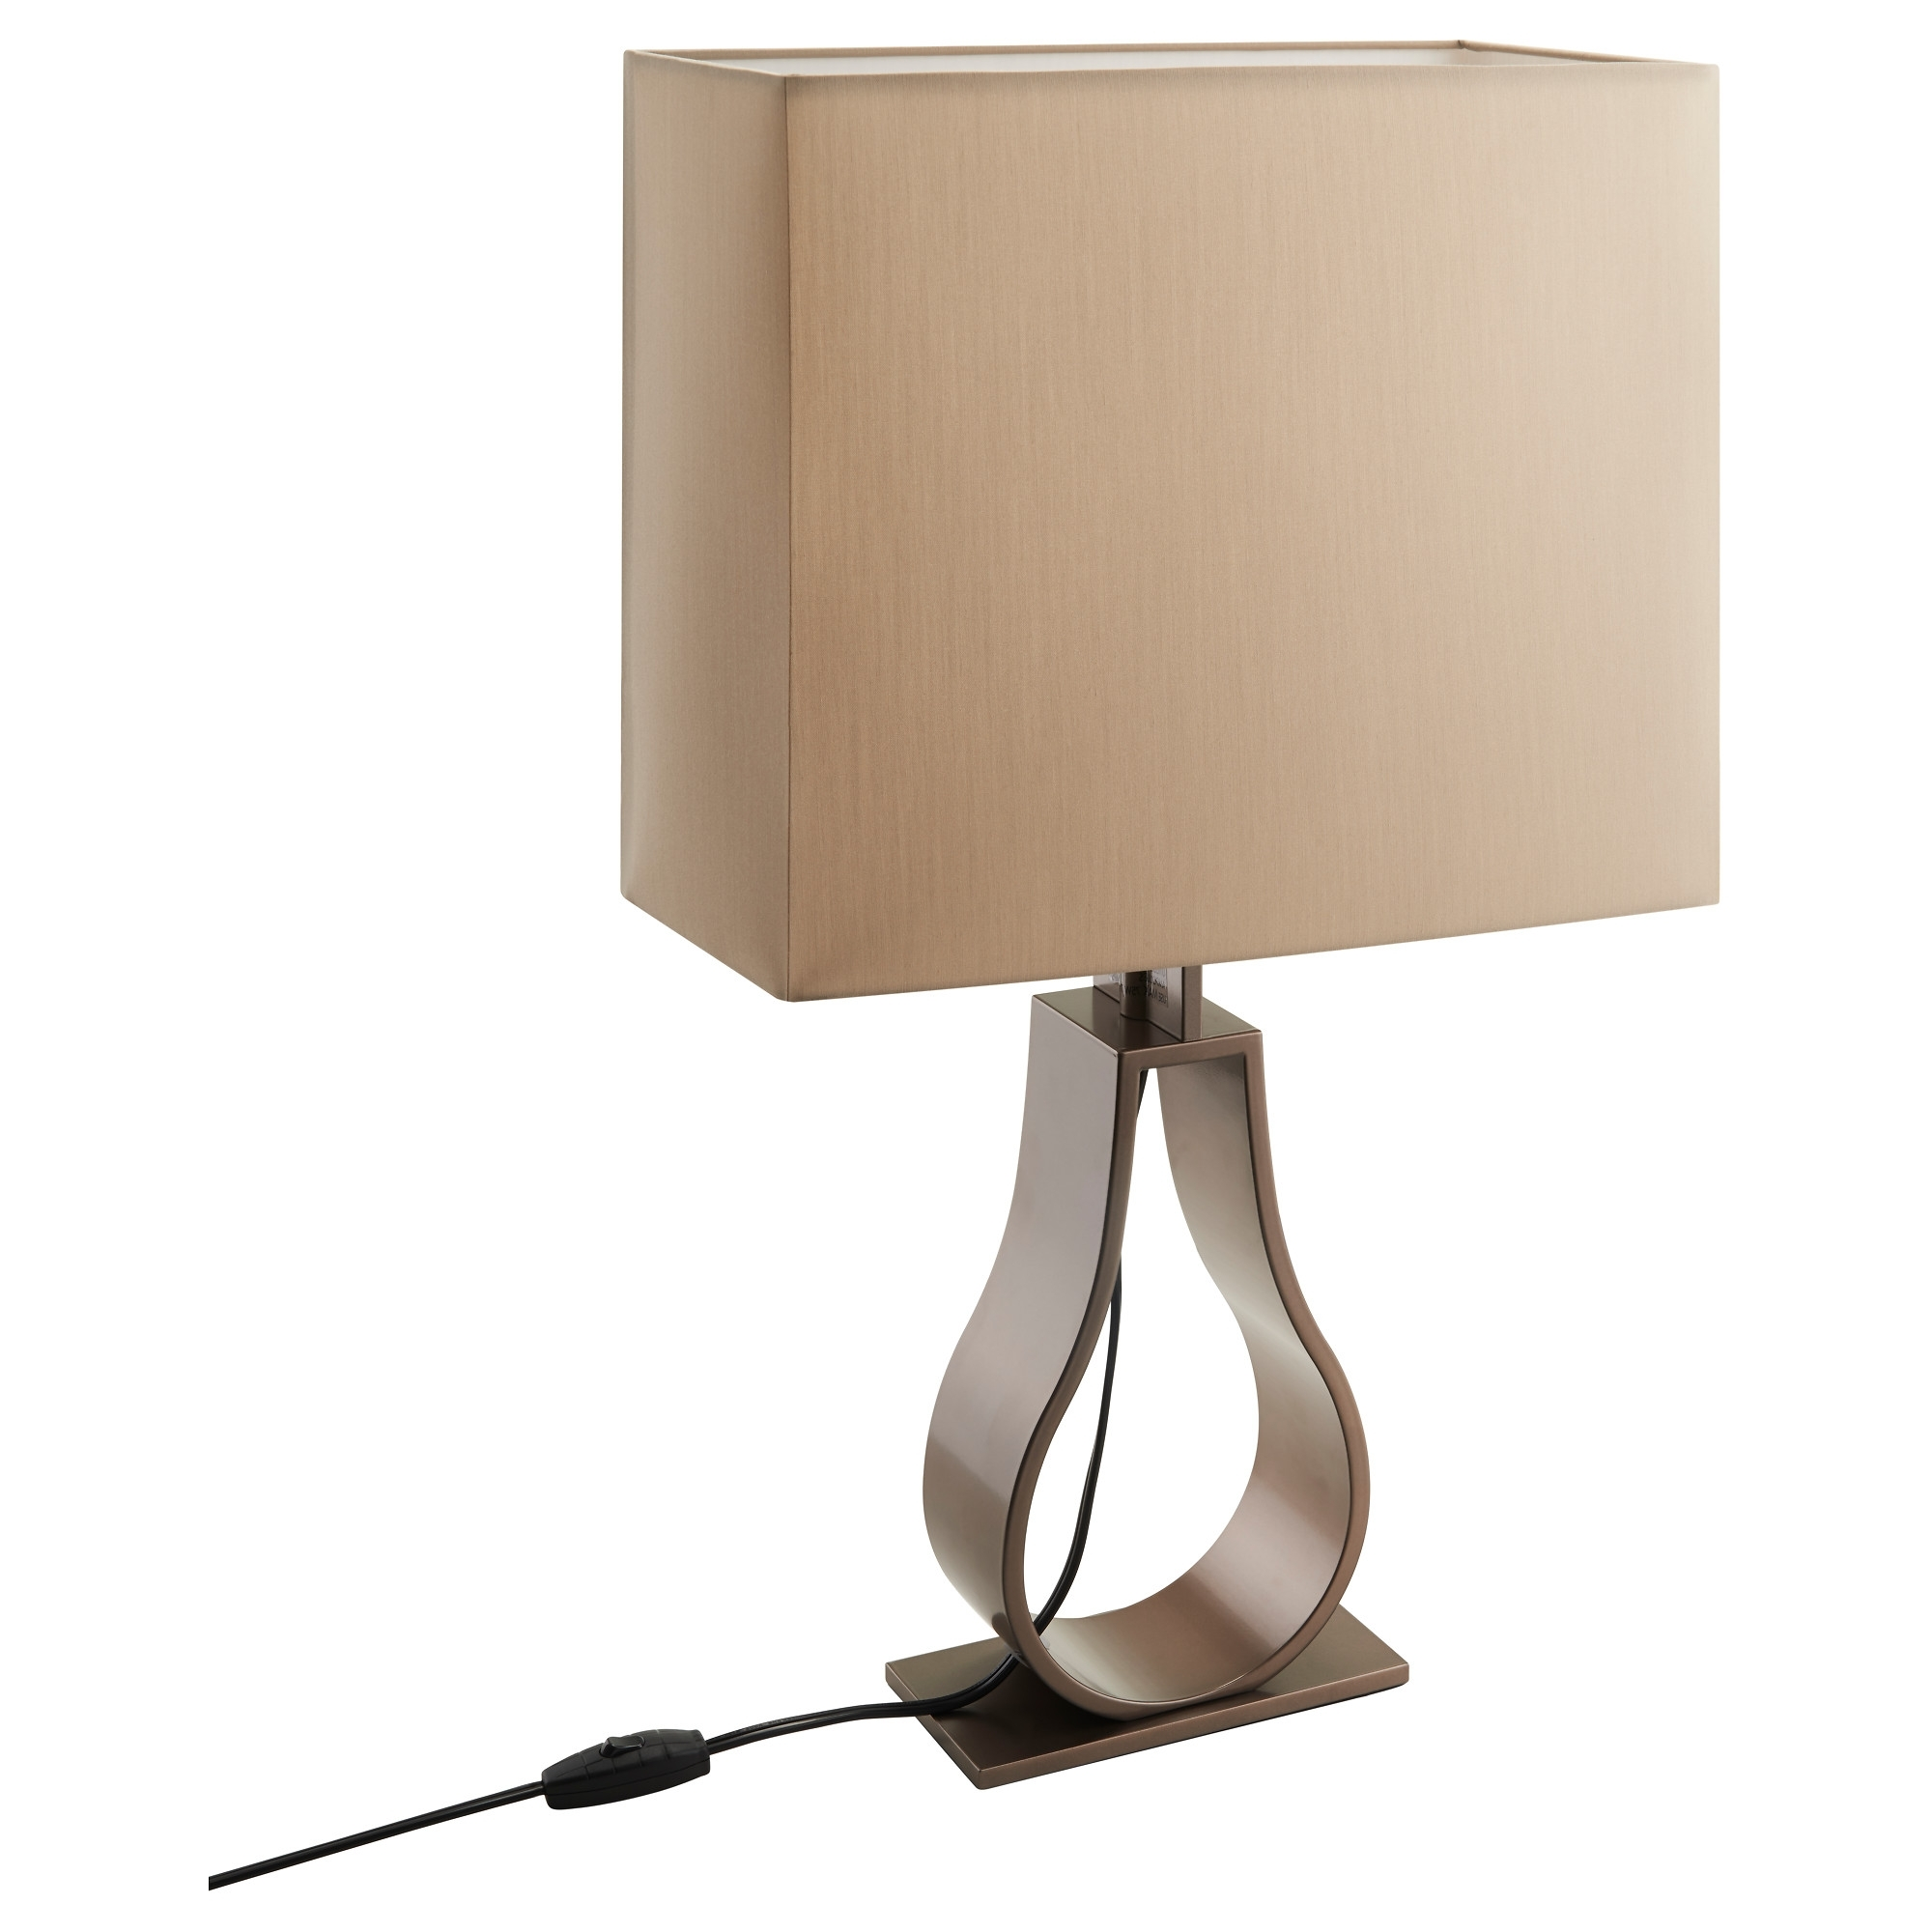 Popular Top 70 Wonderful White Lamp Floor Lamps Table For Living Room Buffet Inside Table Lamps For Living Room Uk (View 15 of 15)